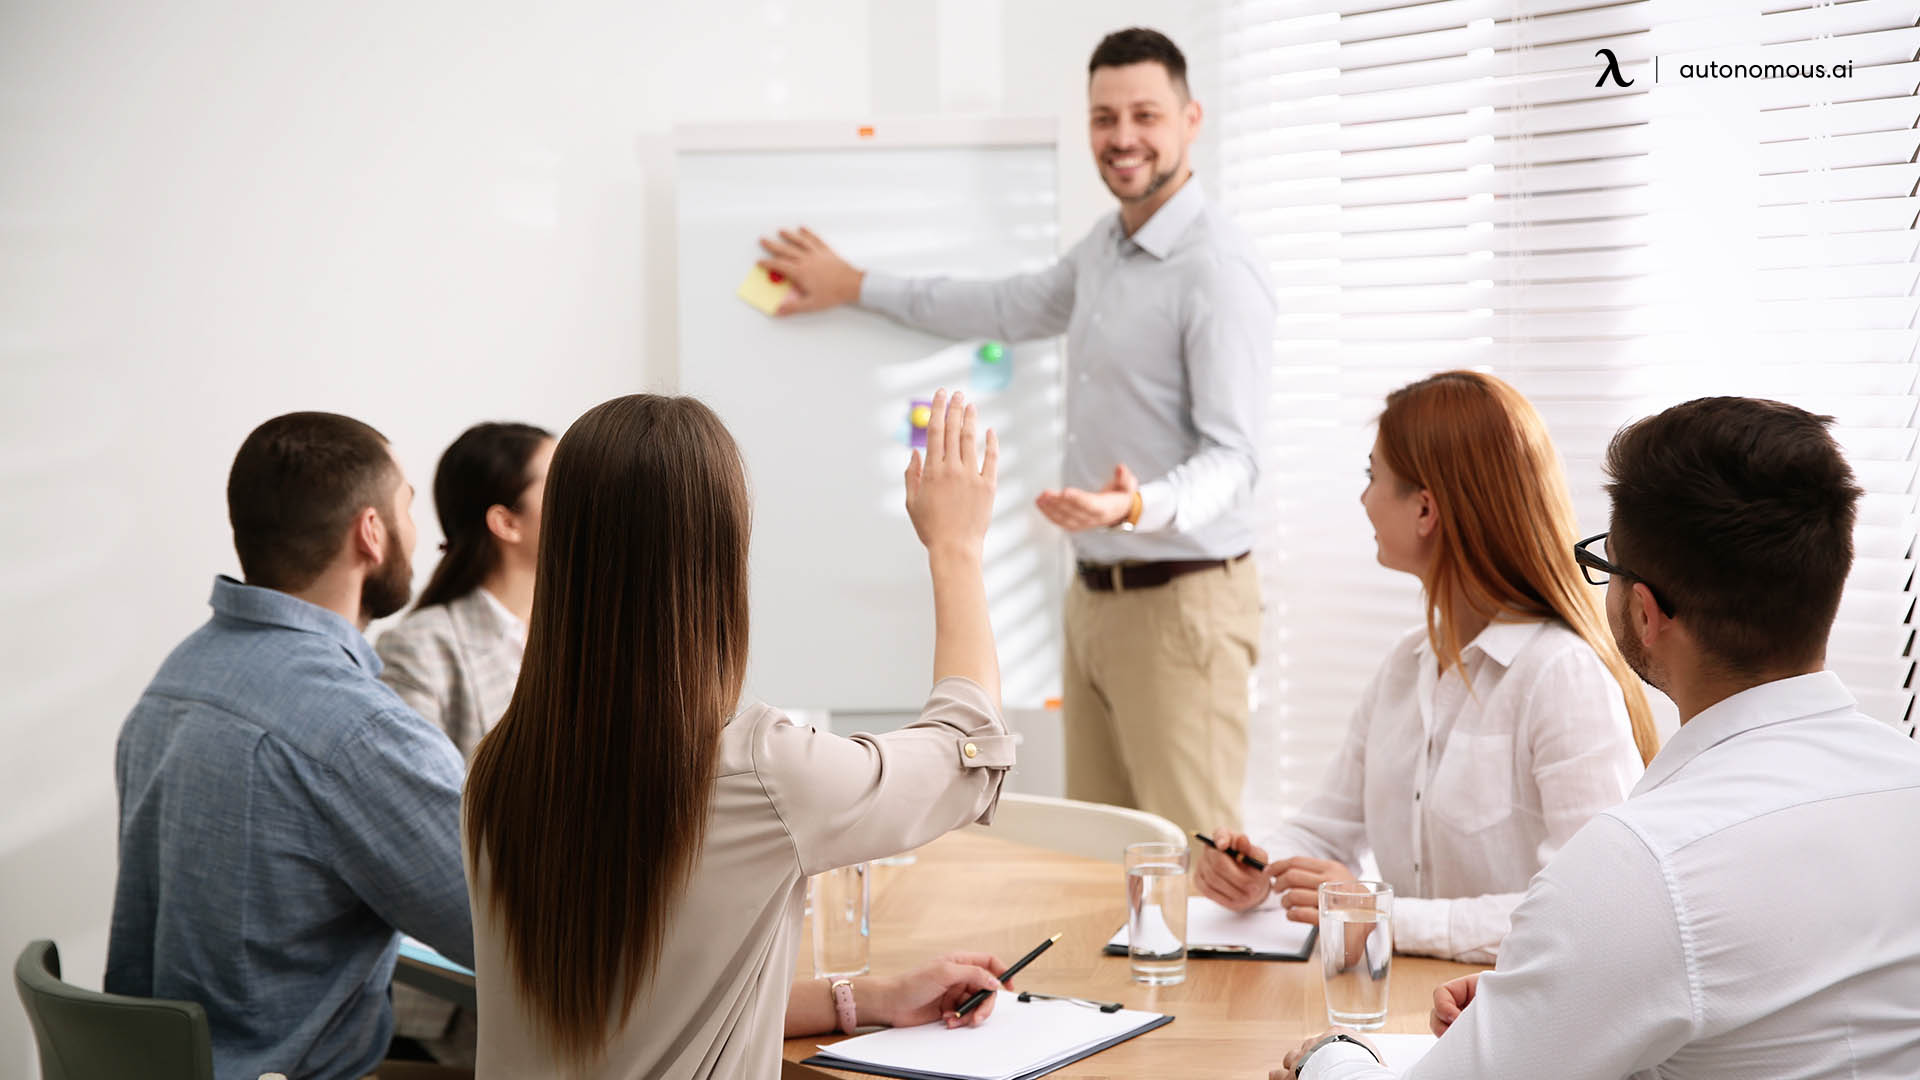 Attend Workshops Events and Conferences